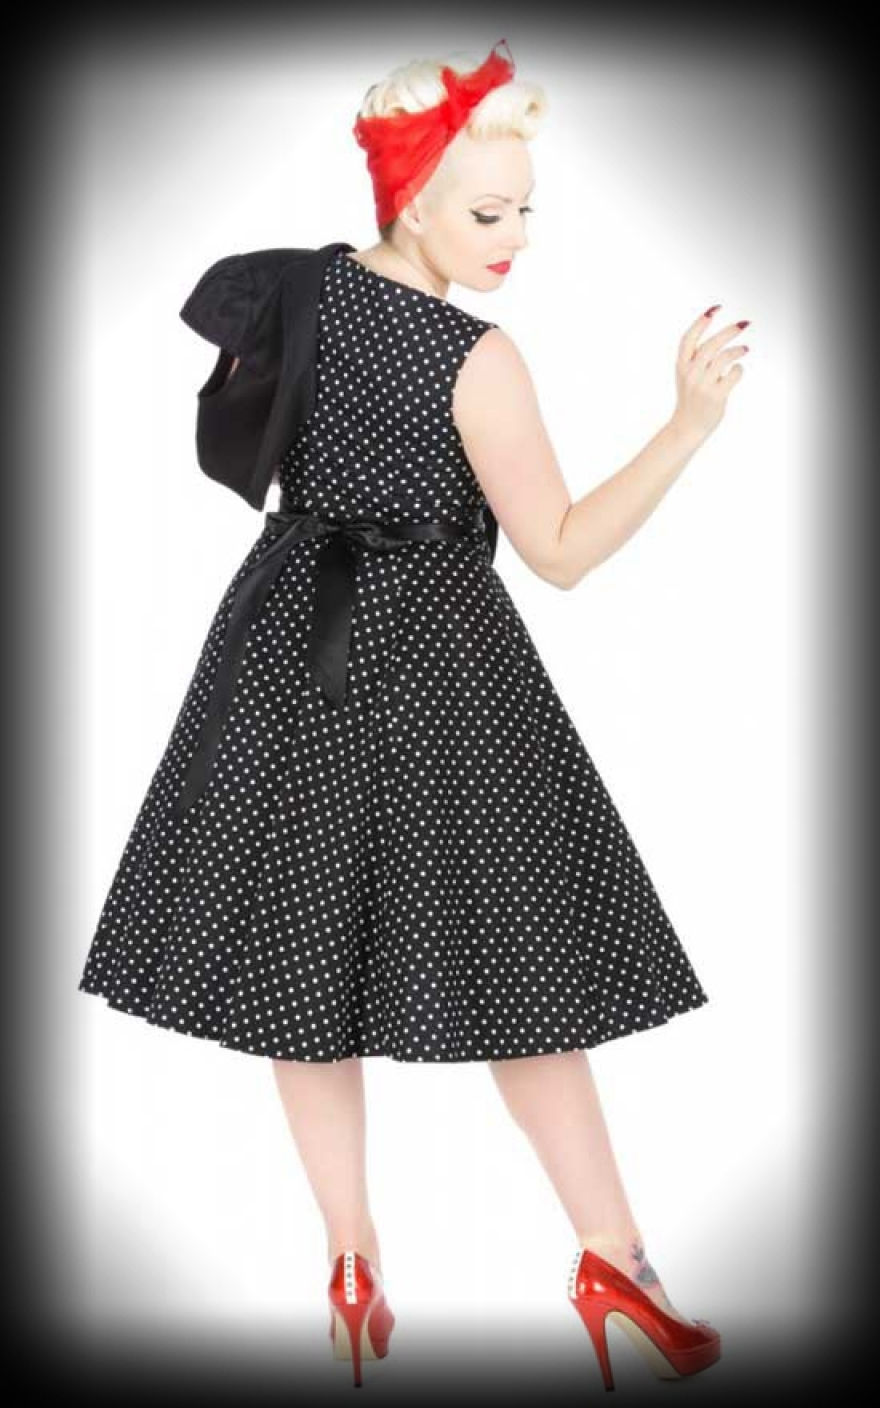 kleid mit bolero polkadot schwarz wei retro dress. Black Bedroom Furniture Sets. Home Design Ideas